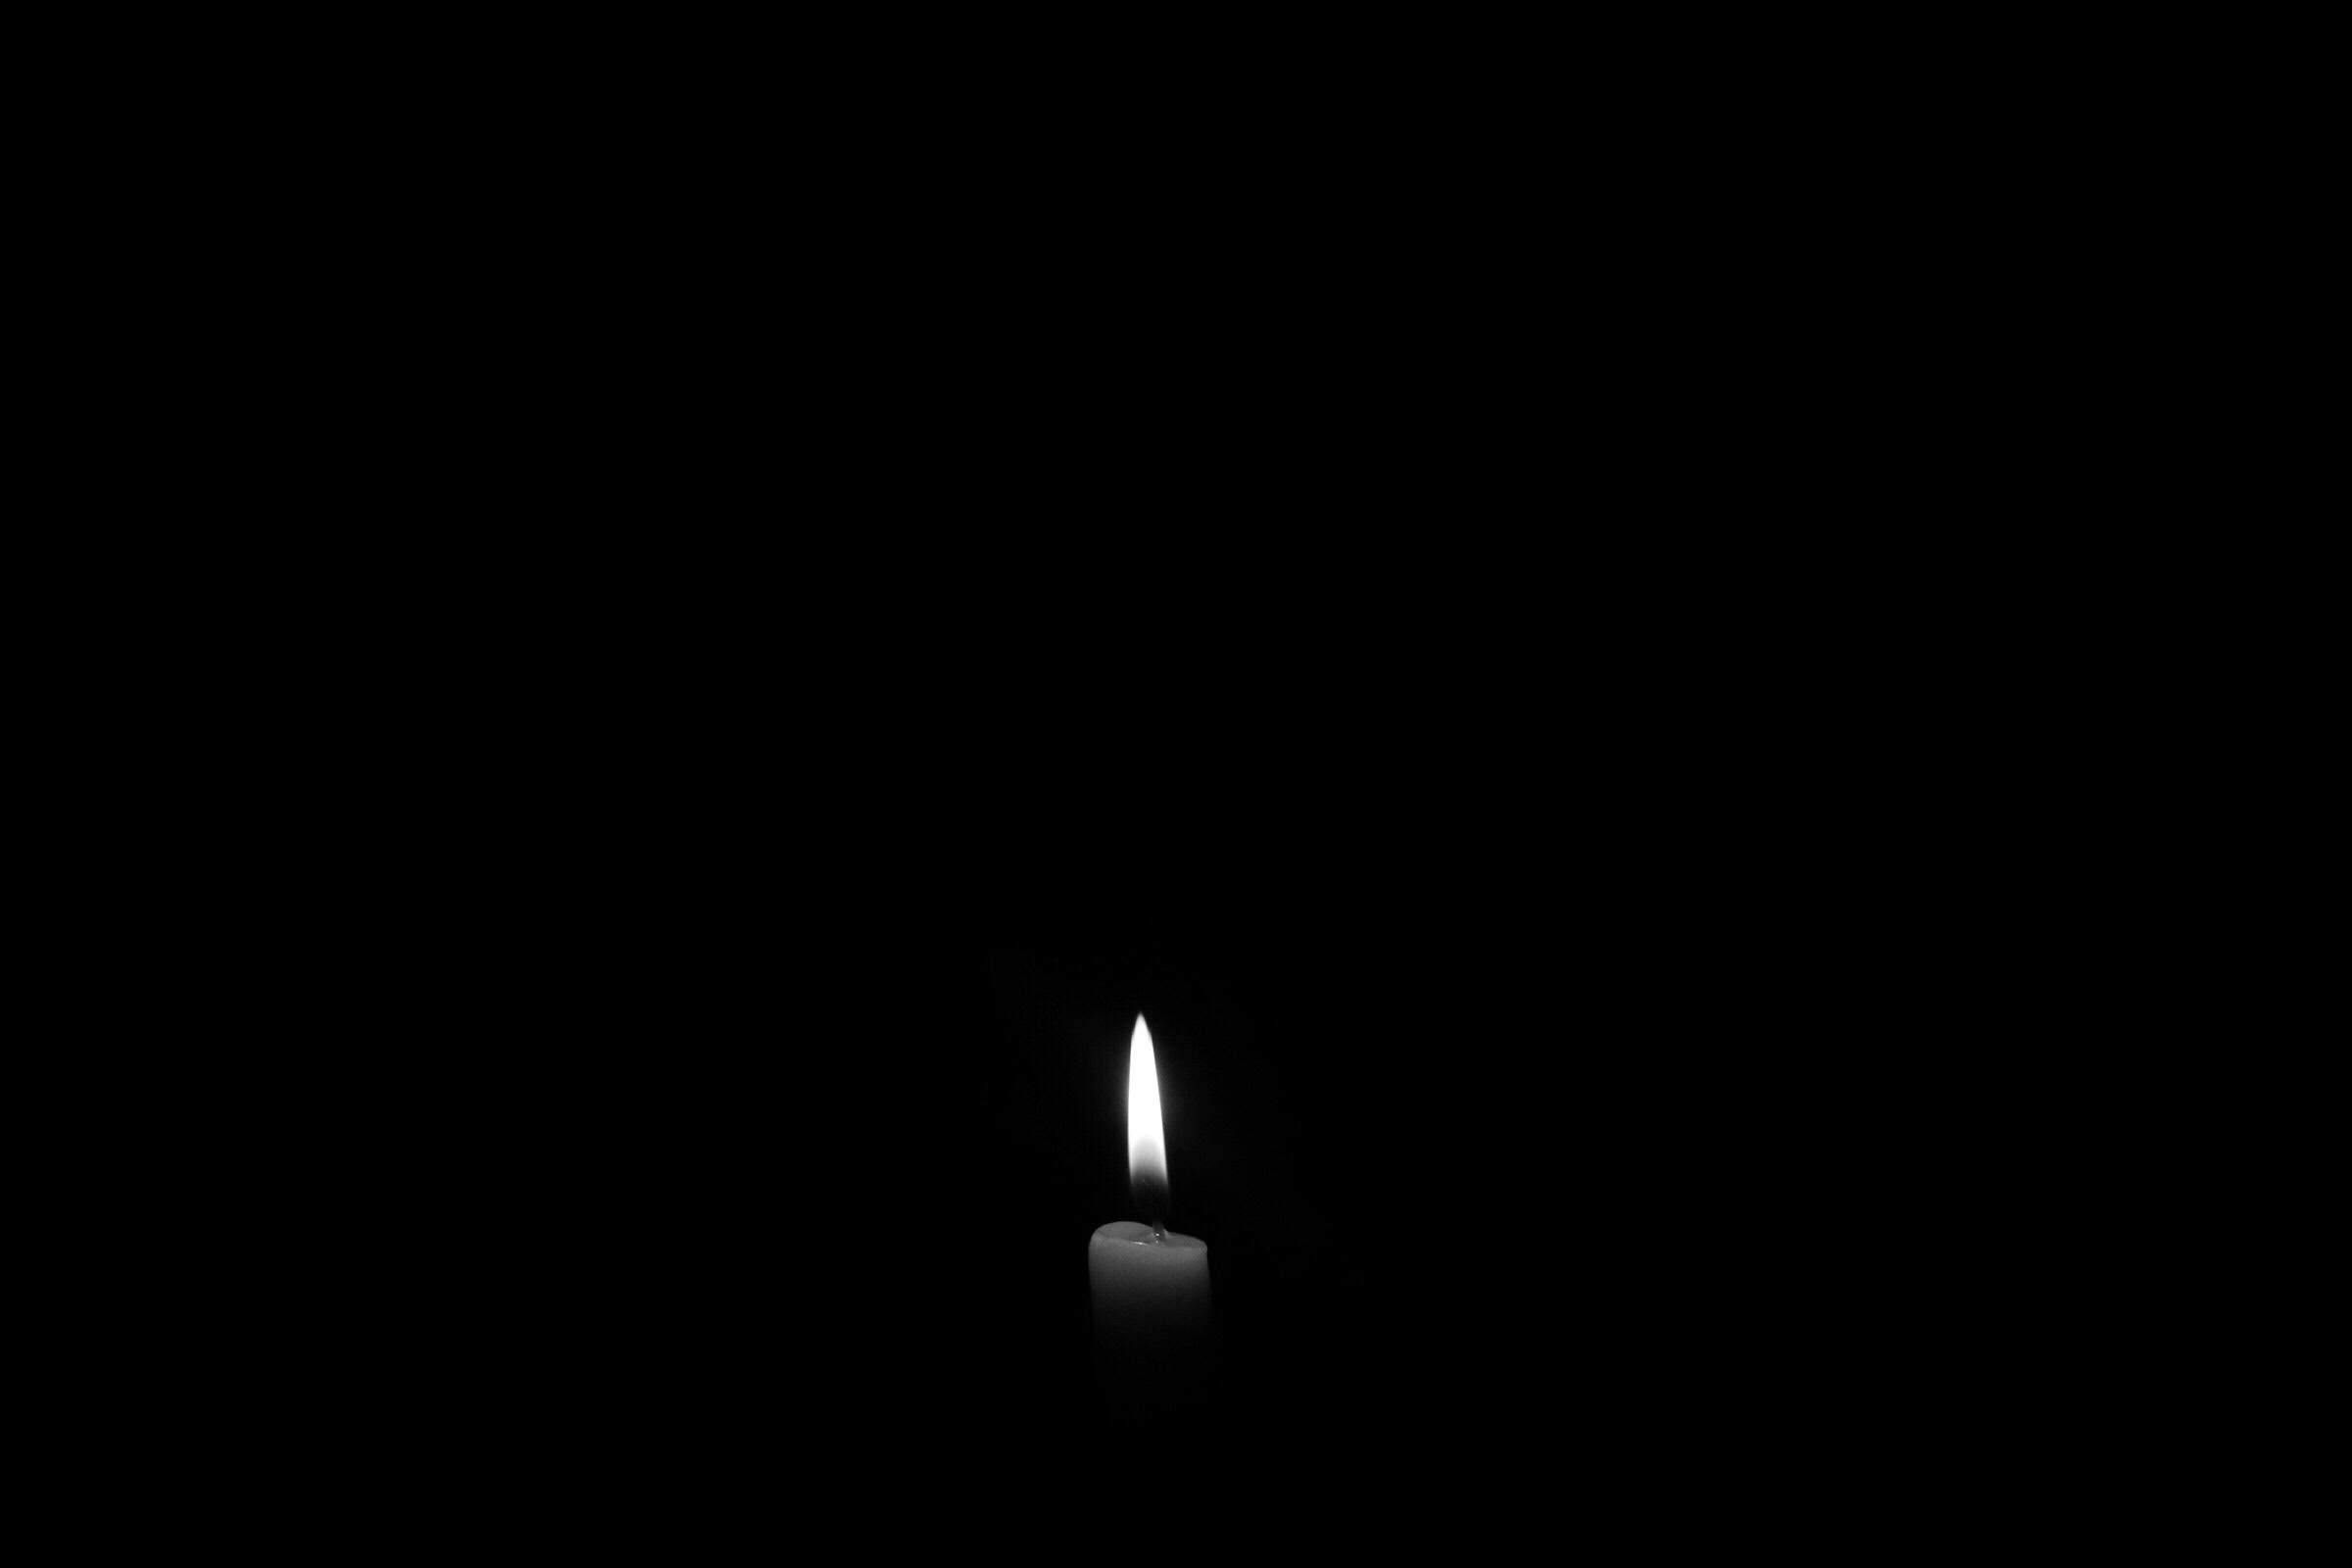 Candle Art Hd Wallpaper: Candle Dark Monochrome, HD Photography, 4k Wallpapers